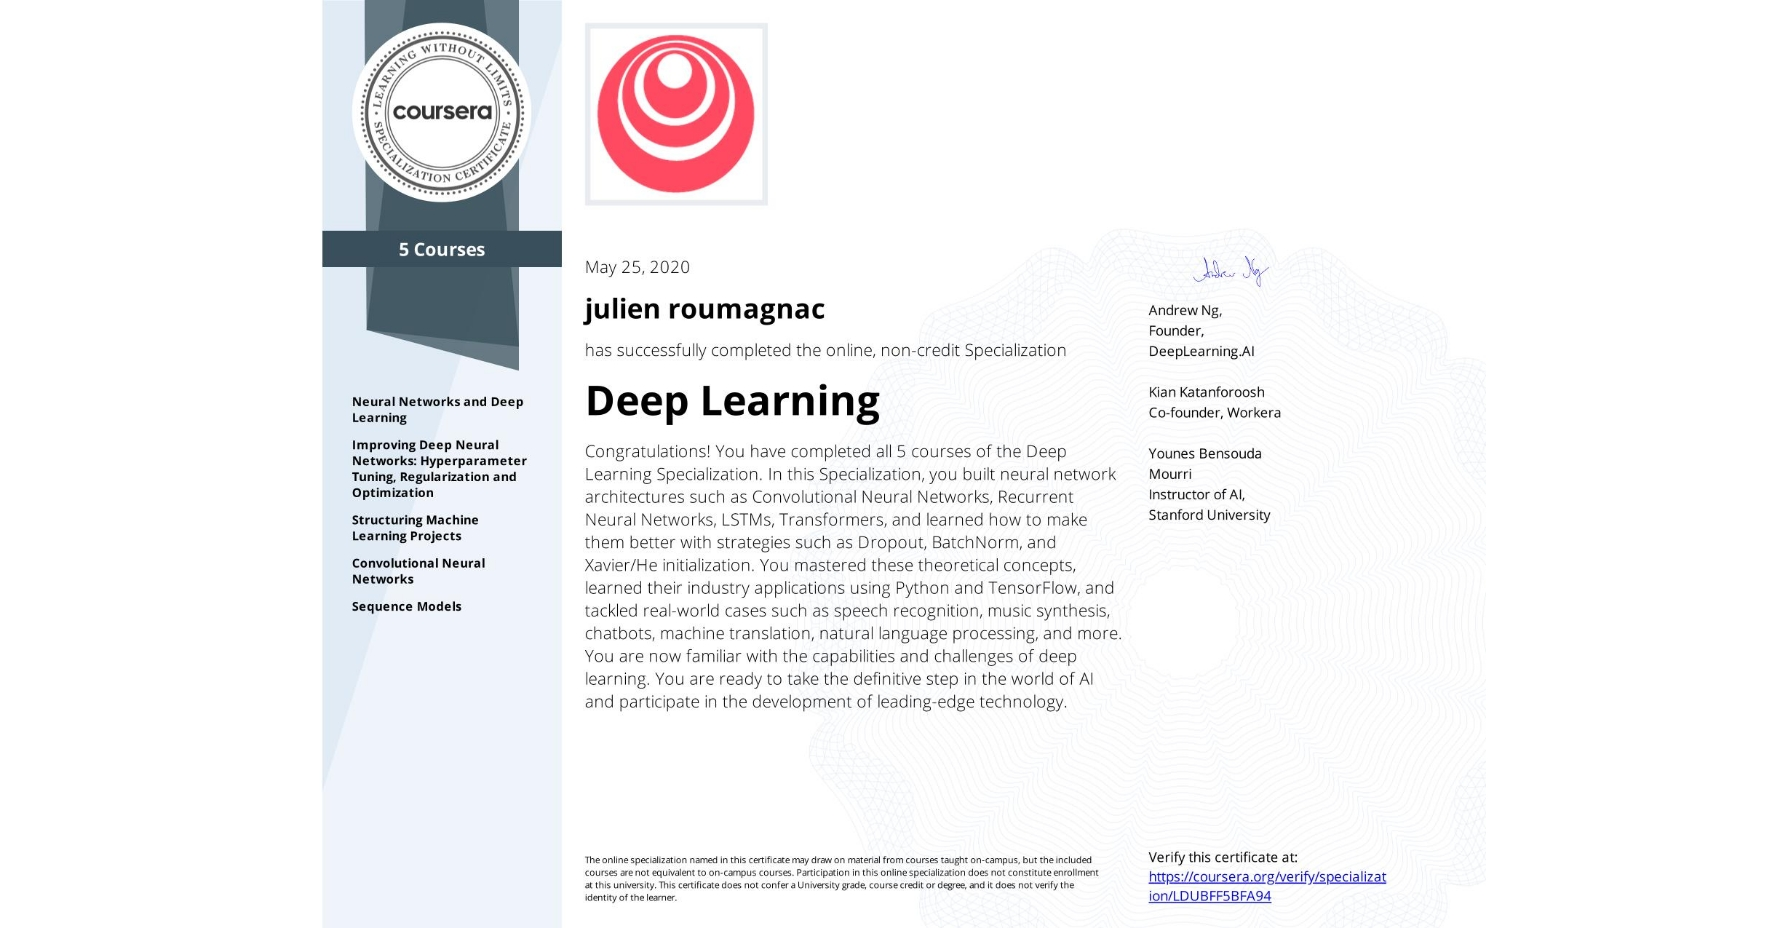 View certificate for julien roumagnac, Deep Learning, offered through Coursera. The Deep Learning Specialization is designed to prepare learners to participate in the development of cutting-edge AI technology, and to understand the capability, the challenges, and the consequences of the rise of deep learning. Through five interconnected courses, learners develop a profound knowledge of the hottest AI algorithms, mastering deep learning from its foundations (neural networks) to its industry applications (Computer Vision, Natural Language Processing, Speech Recognition, etc.).